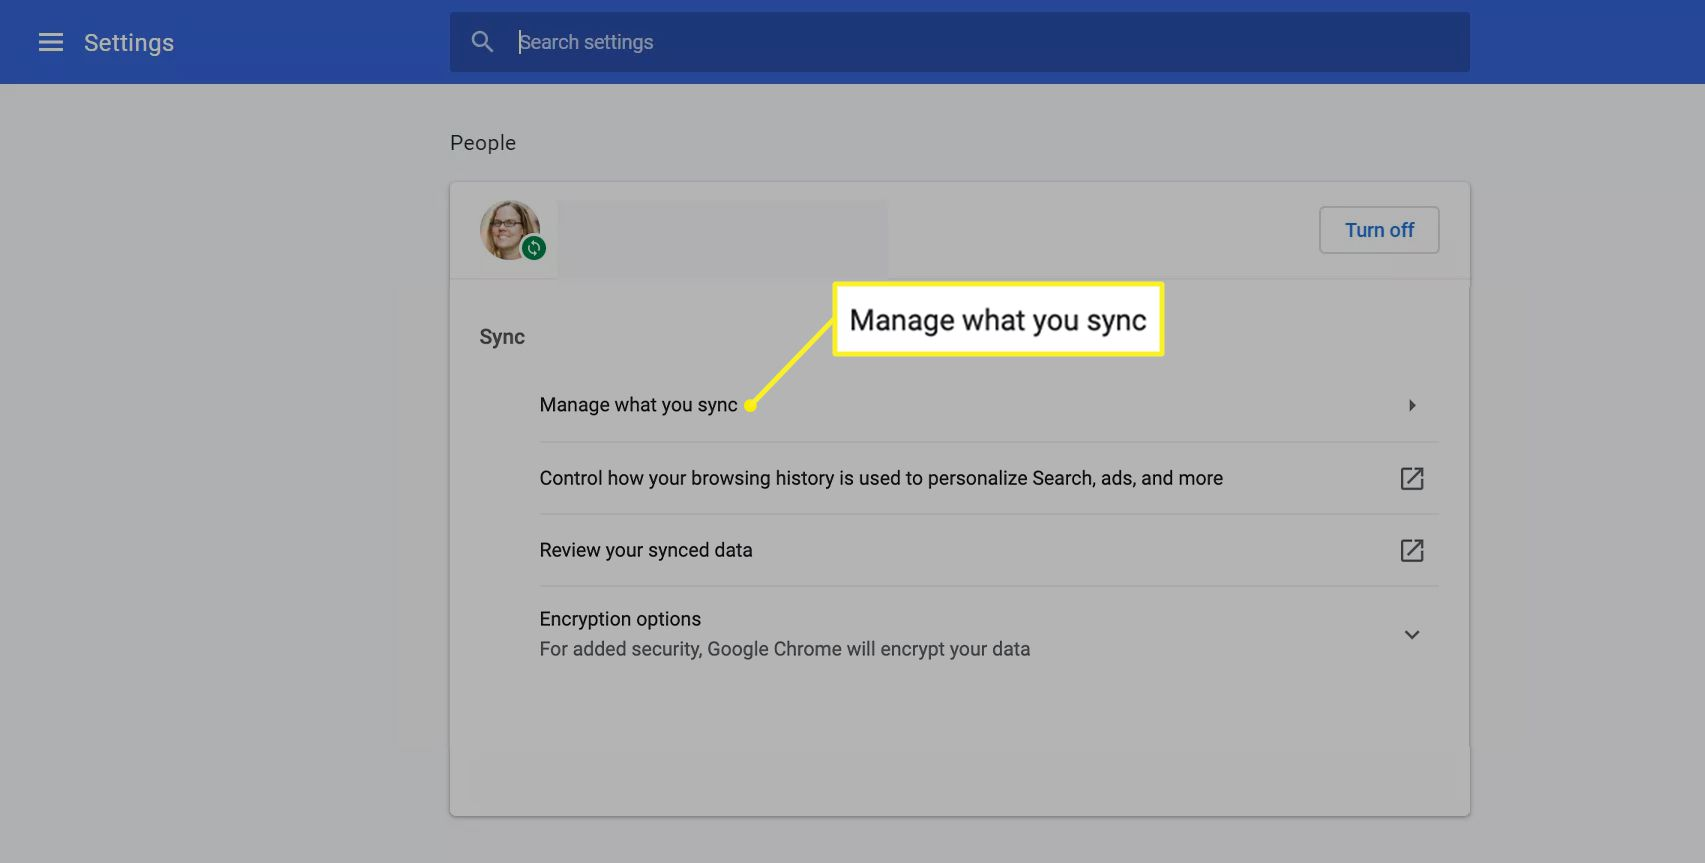 Sync settings with Manage what you sync highlighted